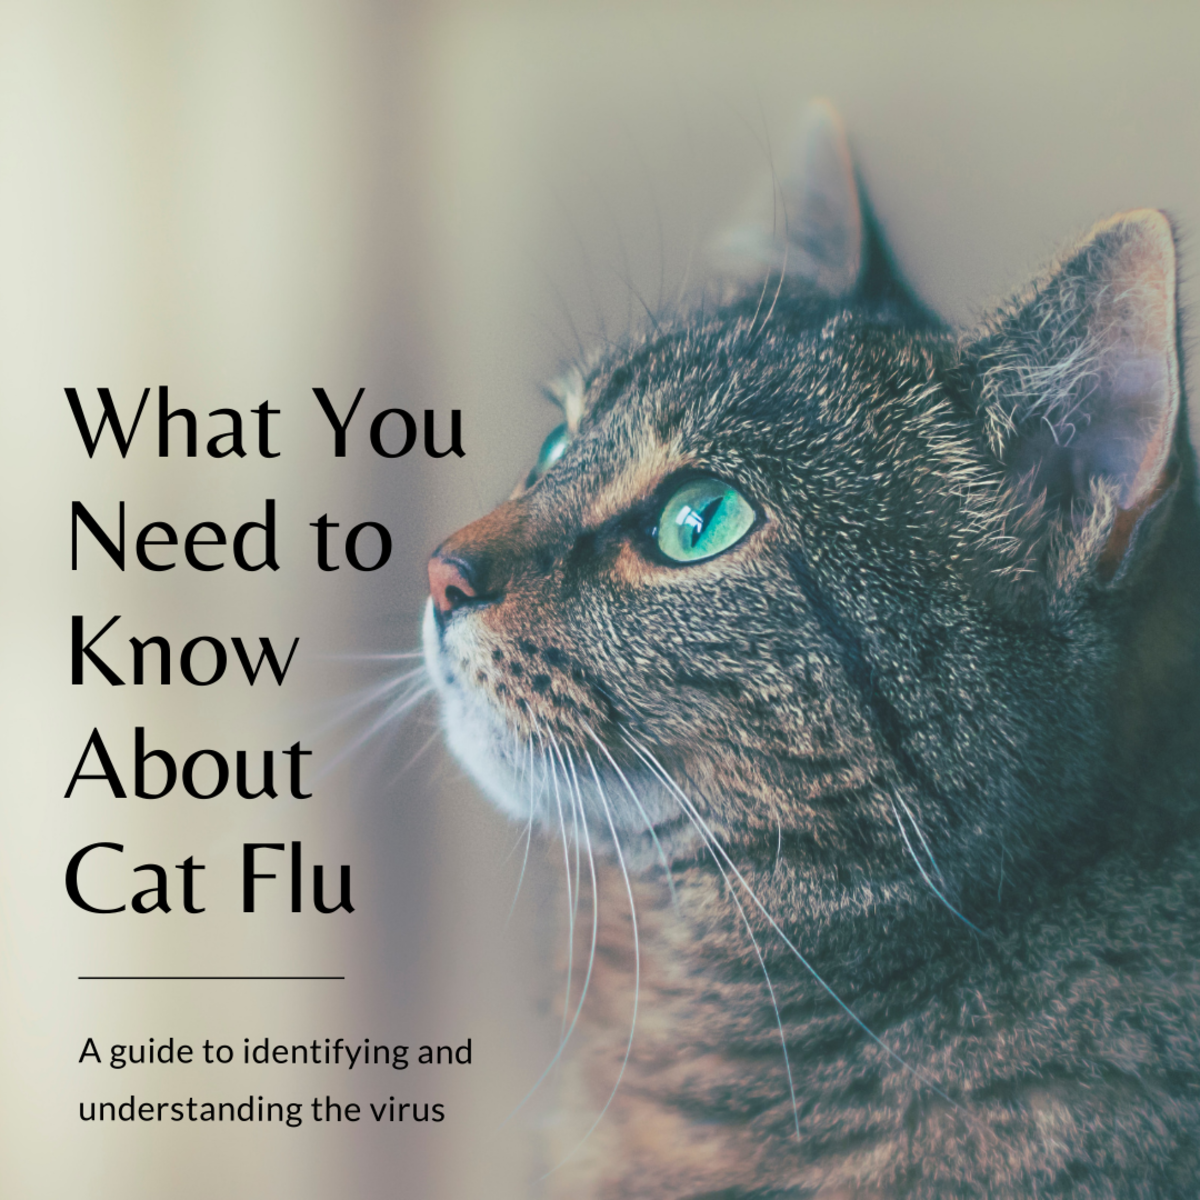 This guide will help you properly identify signs of cat flu and provide you with resources to help prevent your feline friend from contracting the virus in the first place.